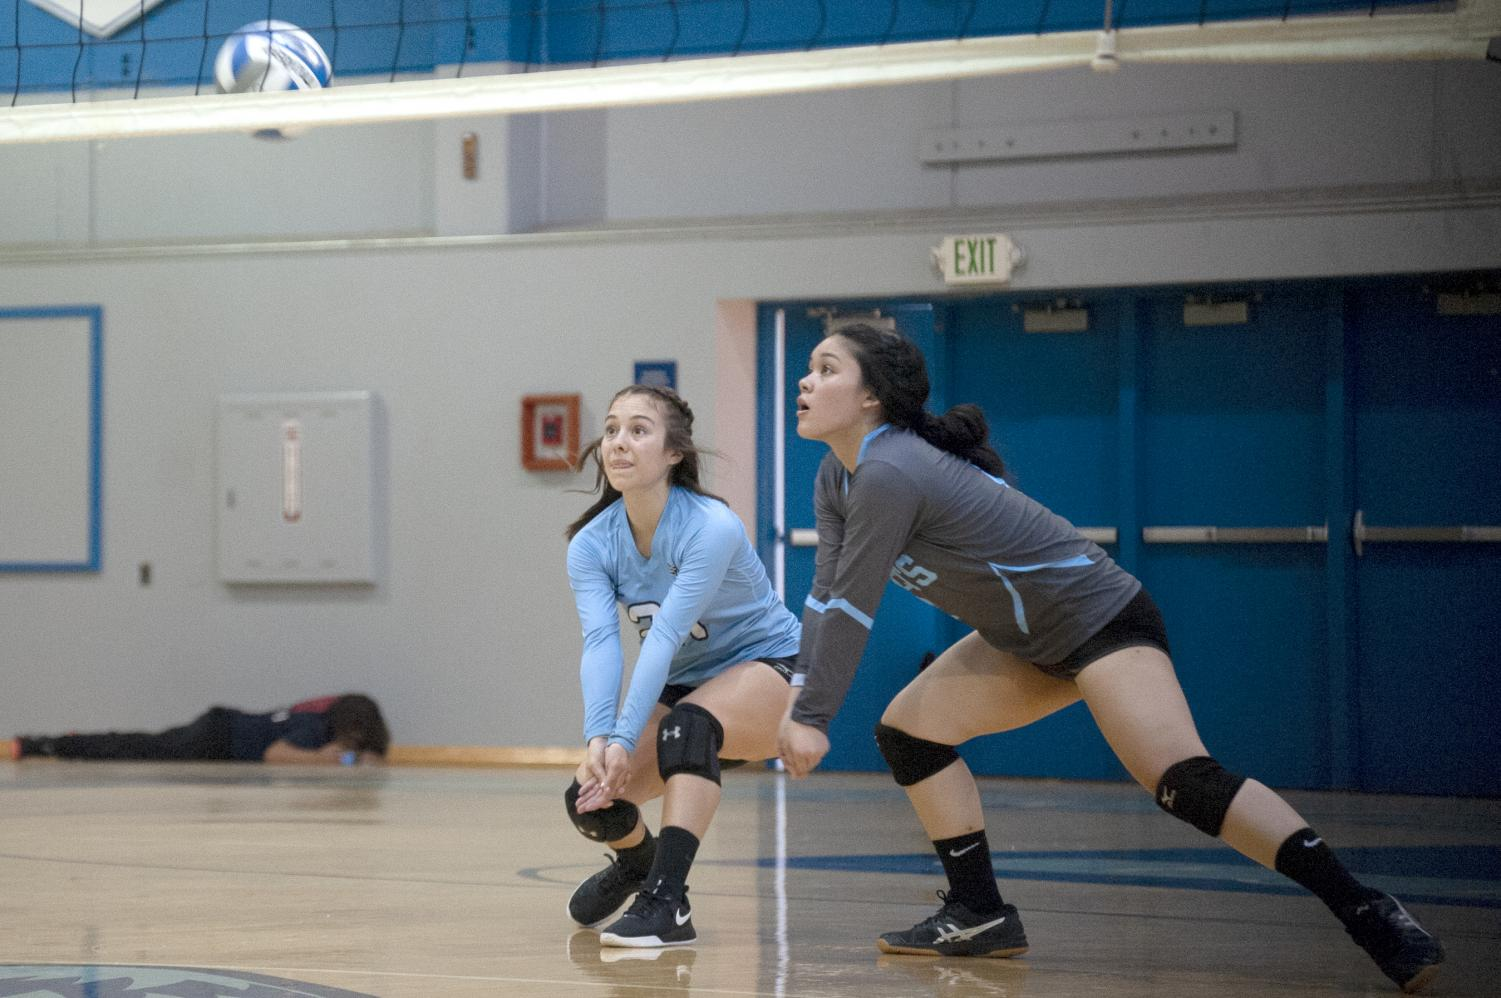 Libero Delanie Baca (left) and outside hitter Chrischelle Reyes (right) anticipate a ball during Contra Costa College's 3-0 defeat against College of Marin on Friday at the Gym.